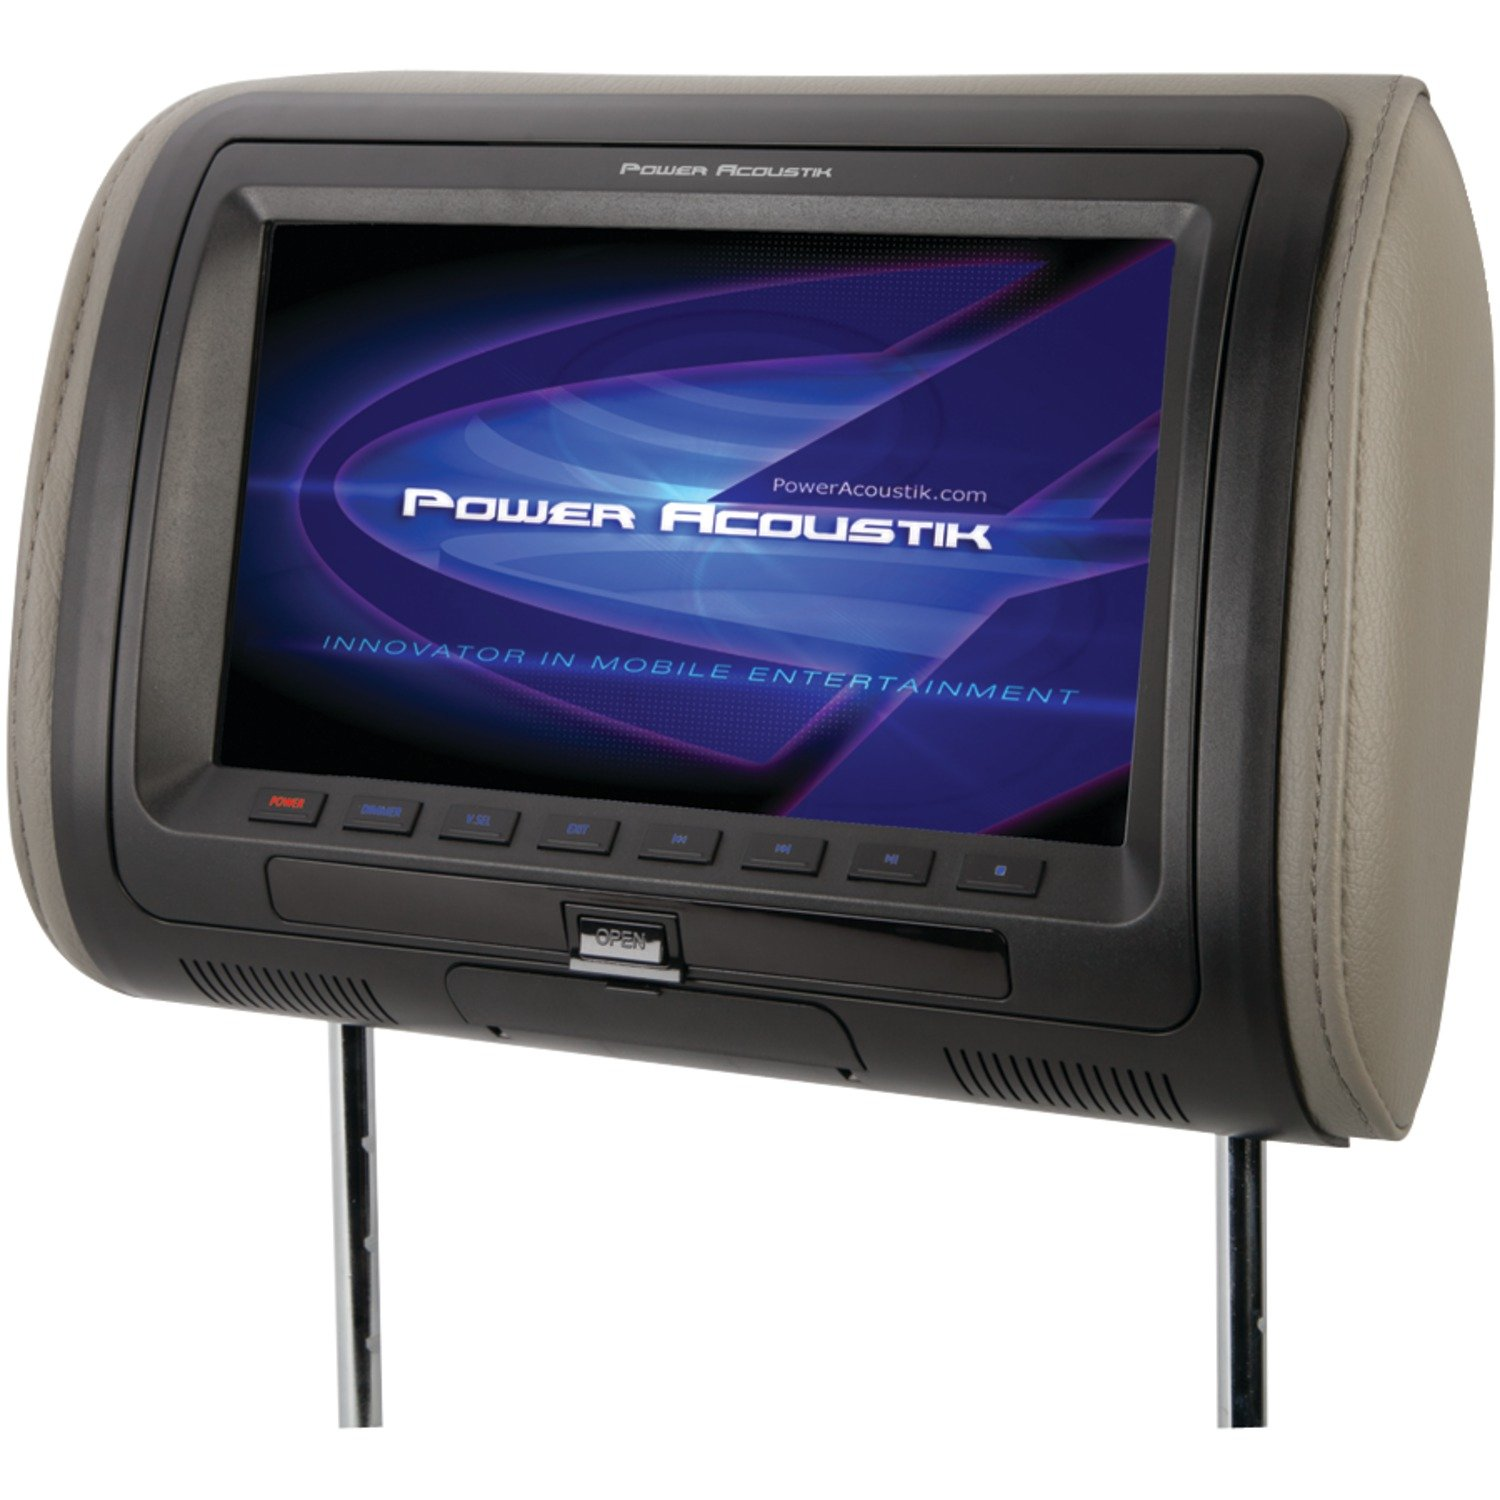 Power Acoustik 7'' Universal Headrest Monitor without DVD Player (H 71HD)